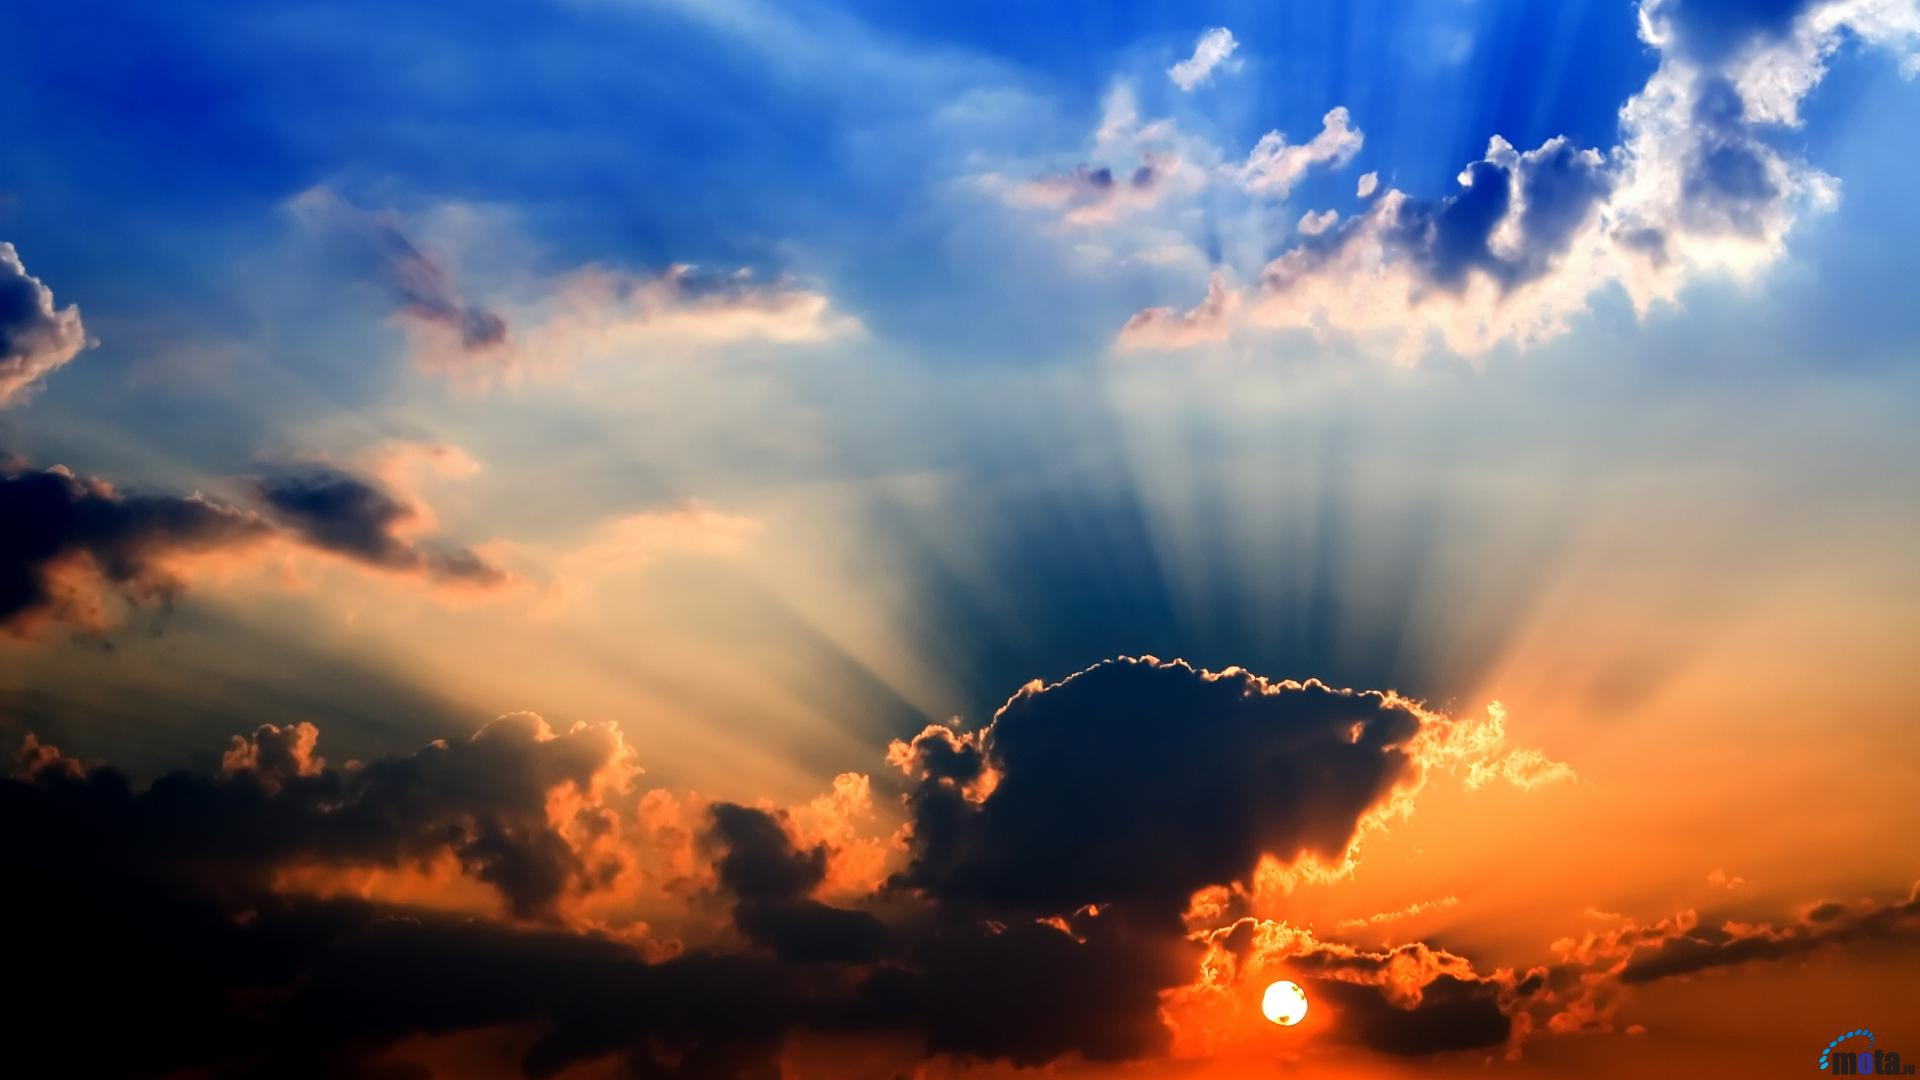 6937804-sun-rays-through-clouds